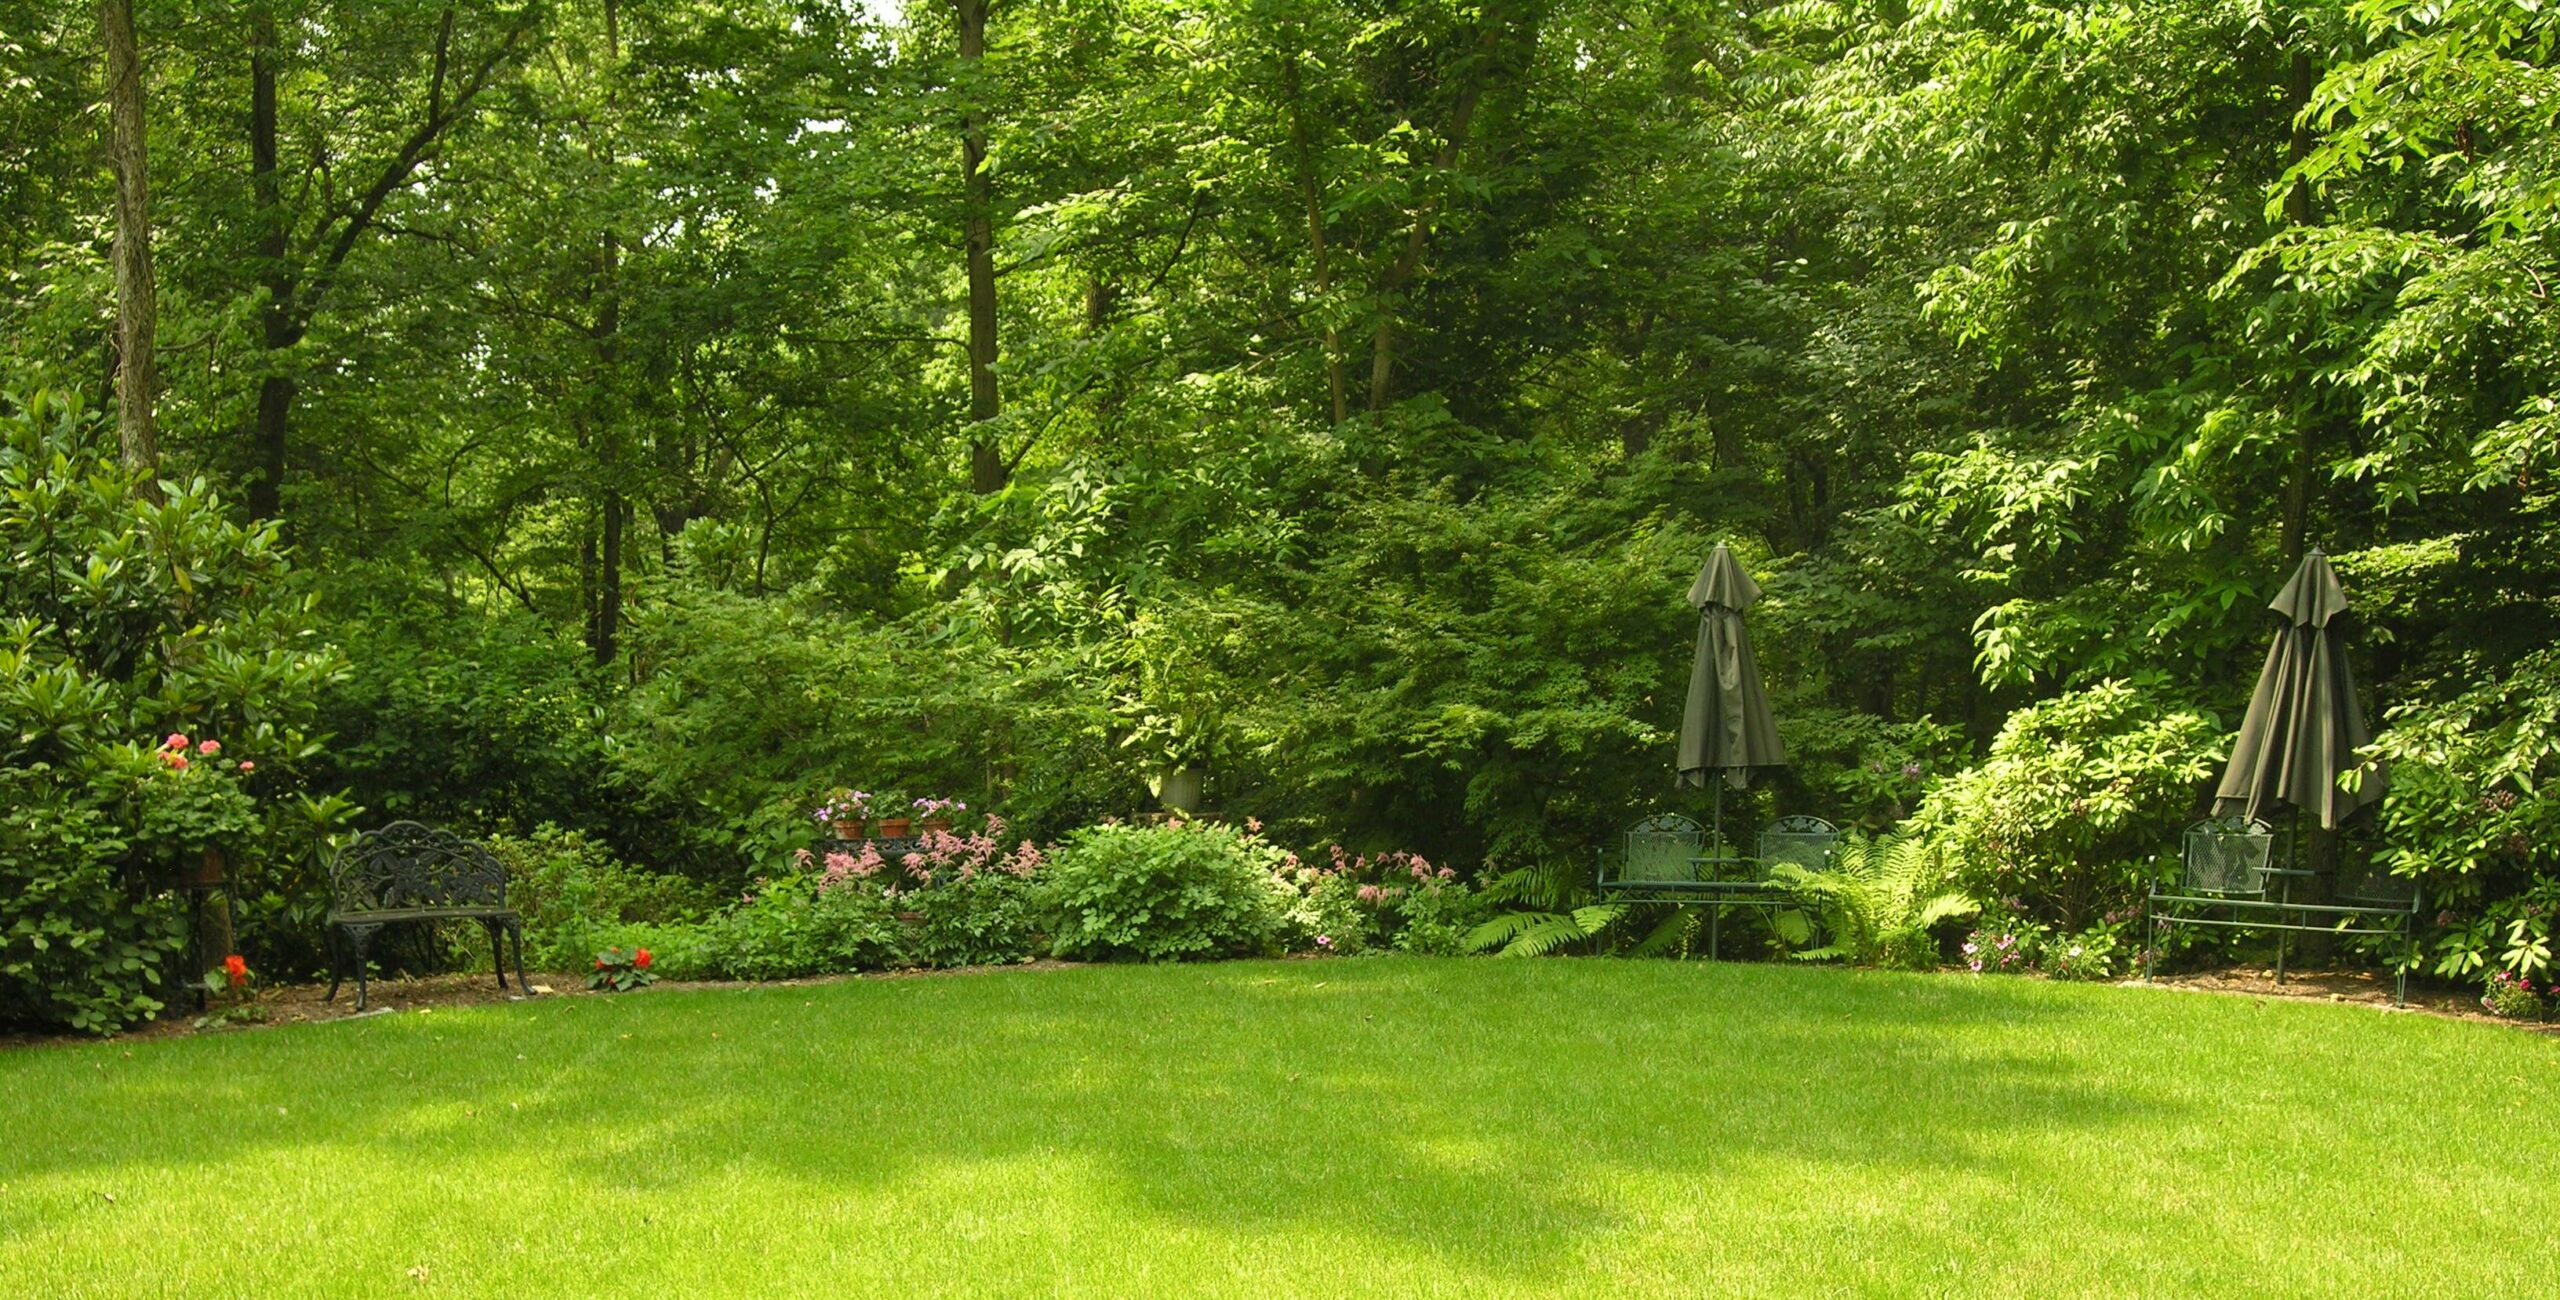 Lawns can be delightful foils beside woodland shade, Lancaster, PA